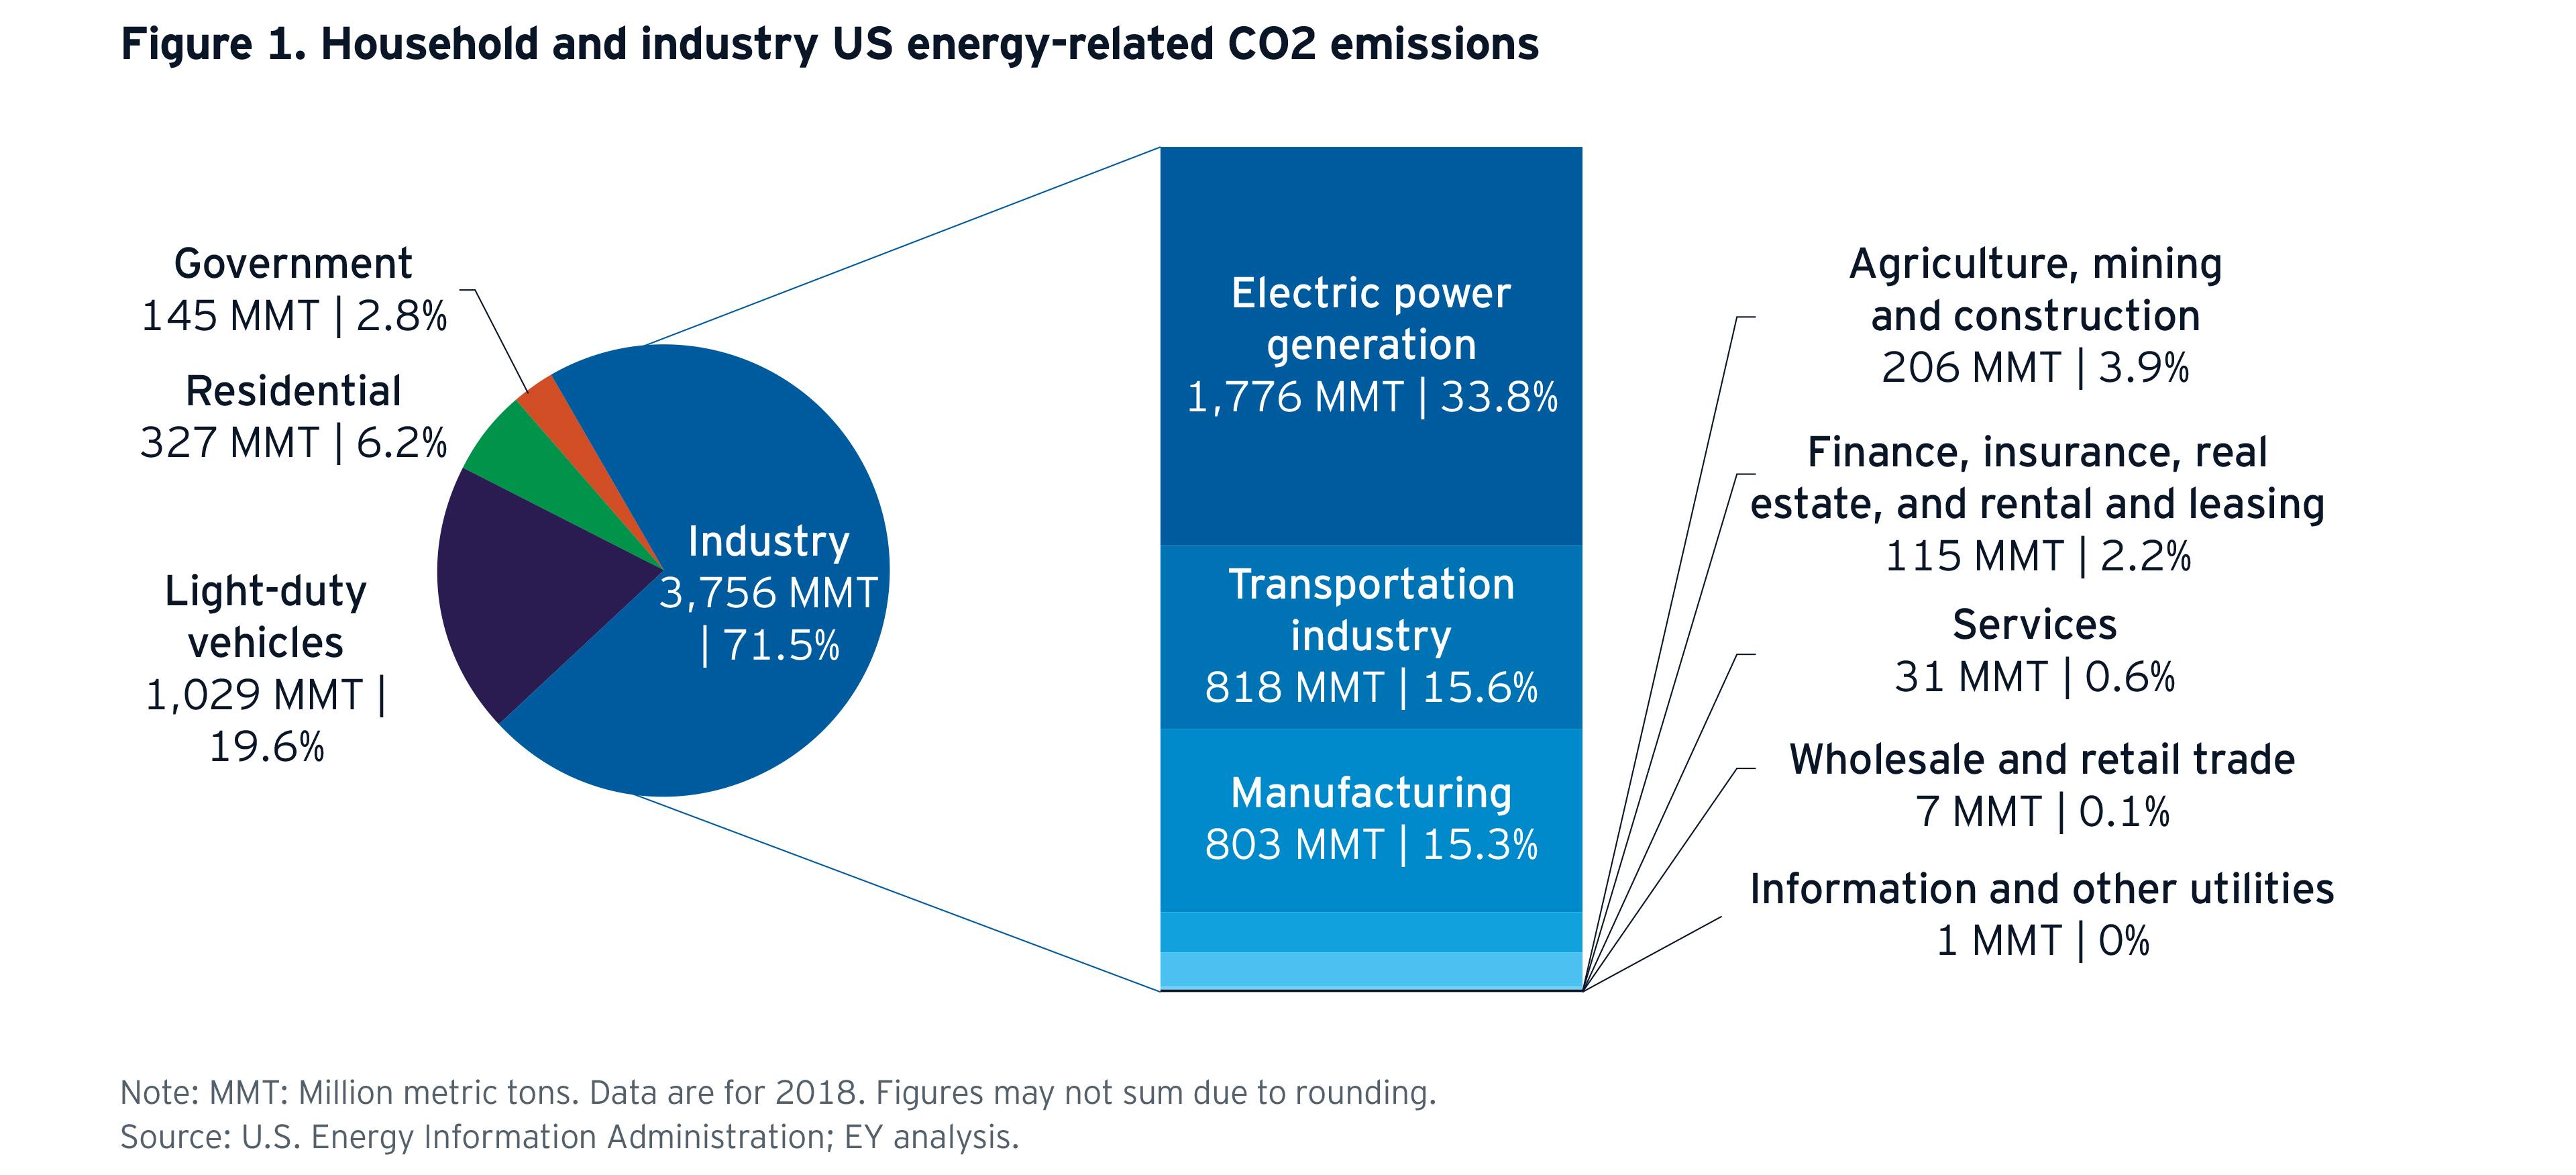 ey-household-and-industry-us-energy-related-co2-emissions